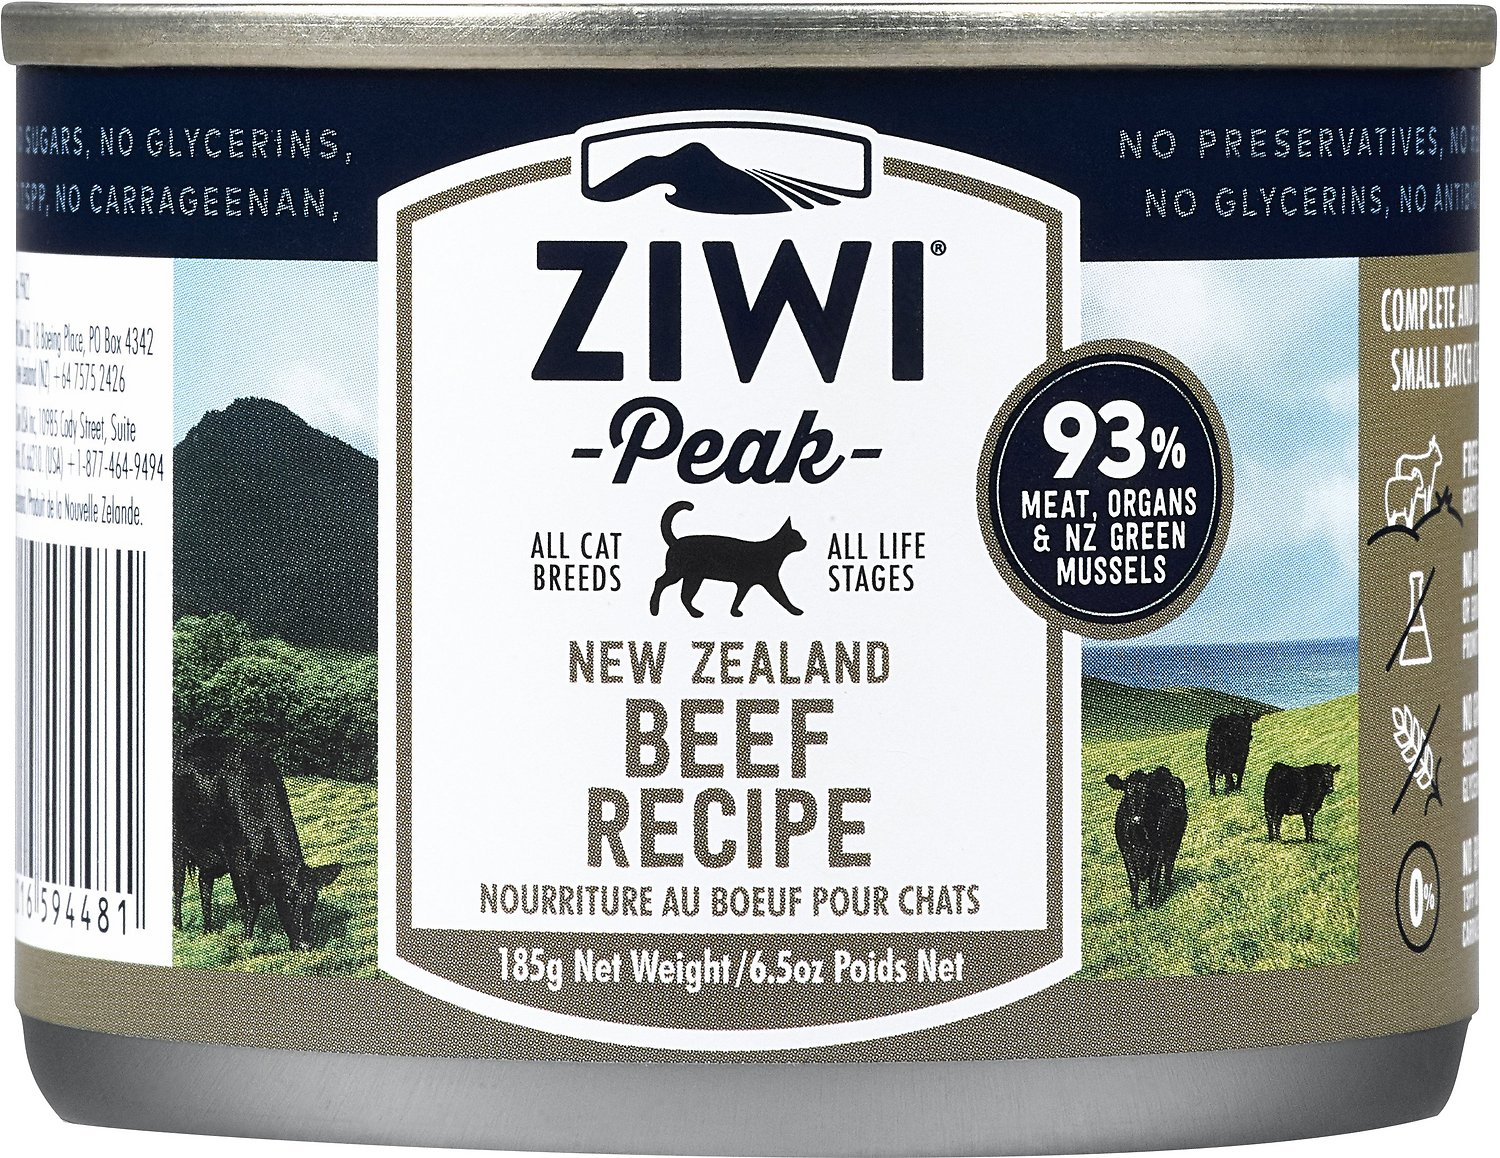 Ziwi Cat Peak Beef Recipe Canned Cat Food, 3-oz